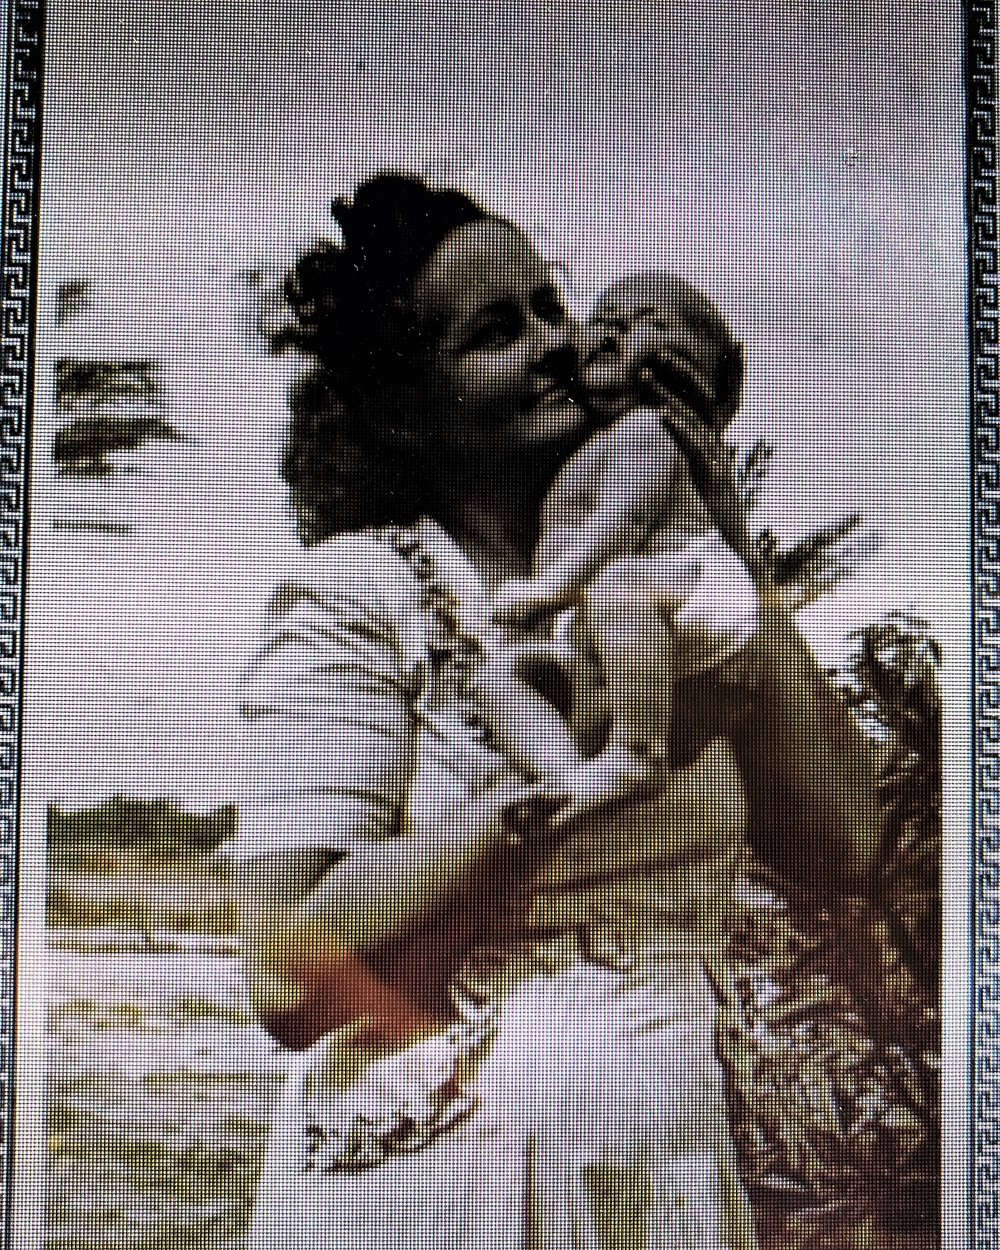 Linda's mother holding her as an infant.